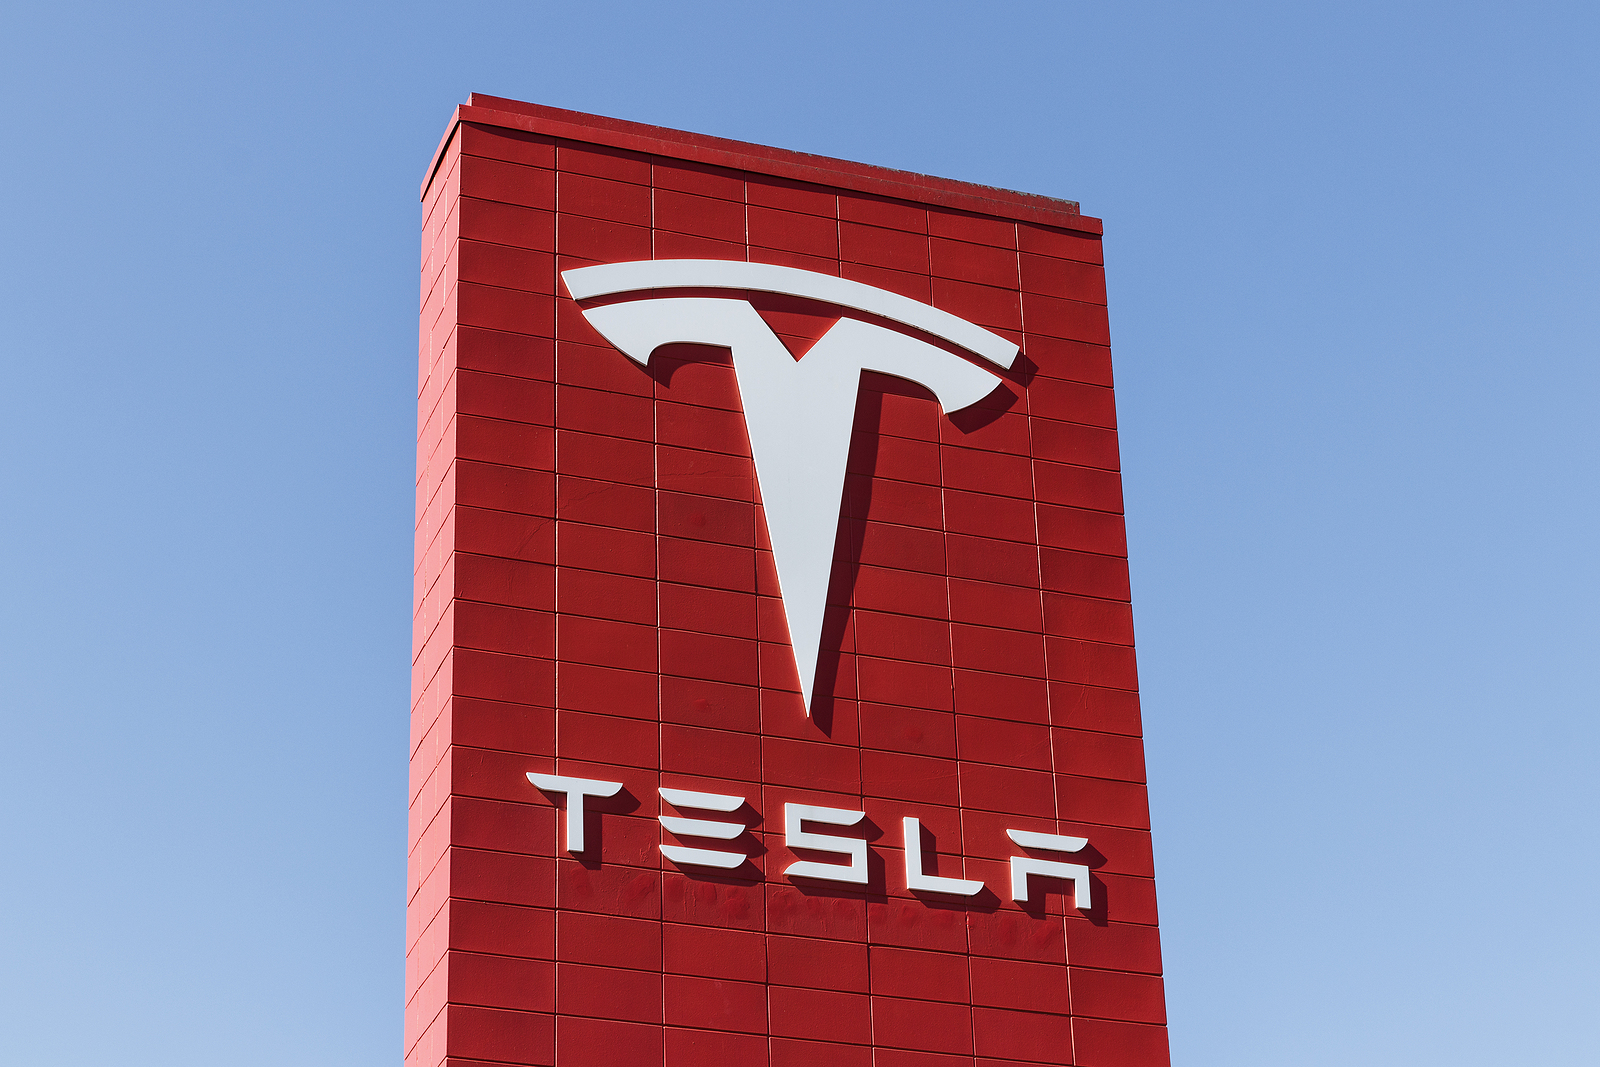 Tesla TSLA stock news and analysis